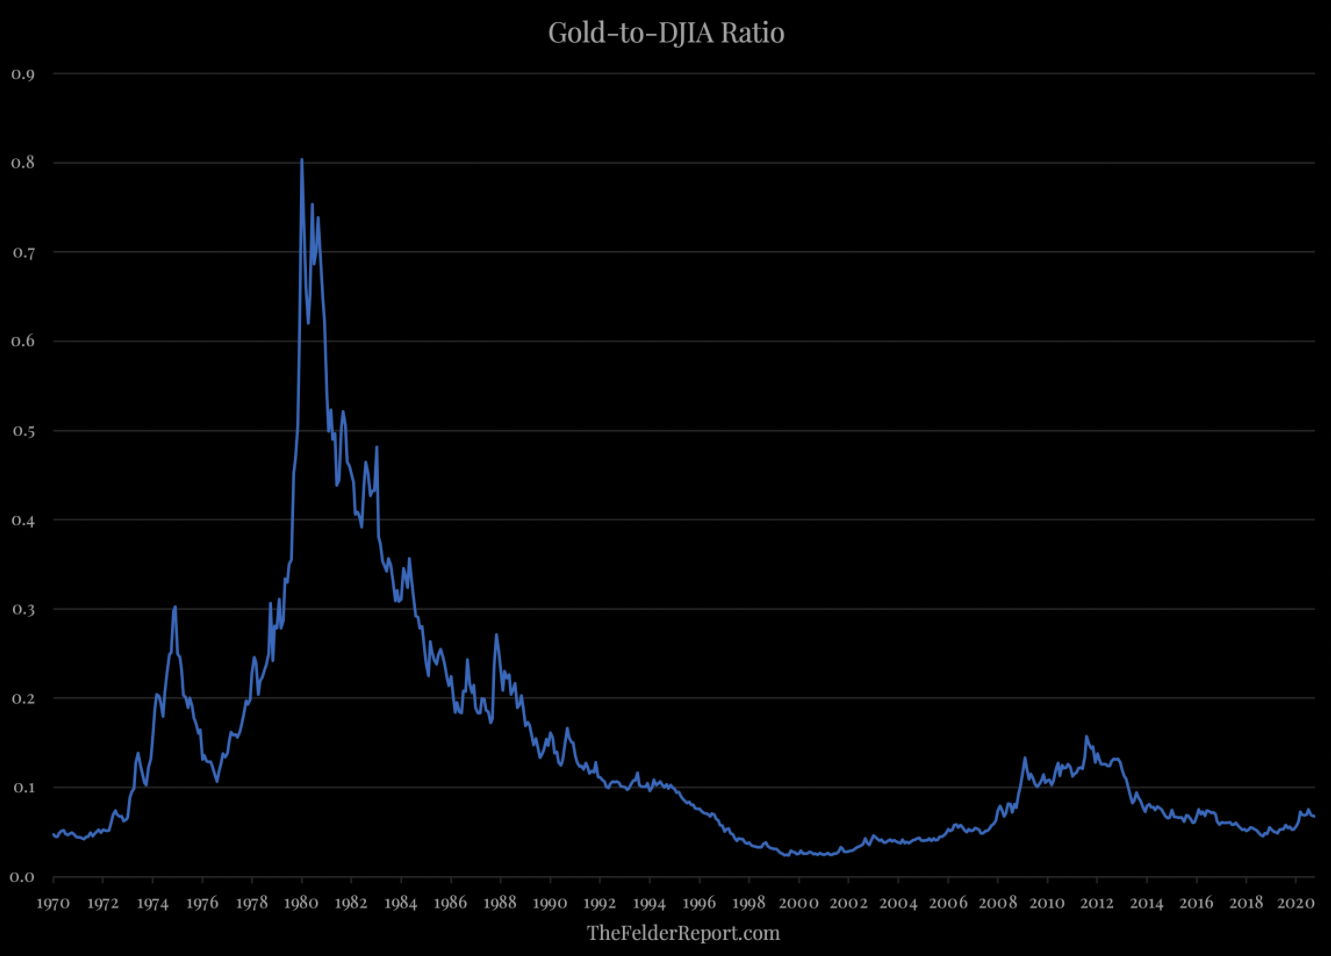 Gold to DJIA ratio